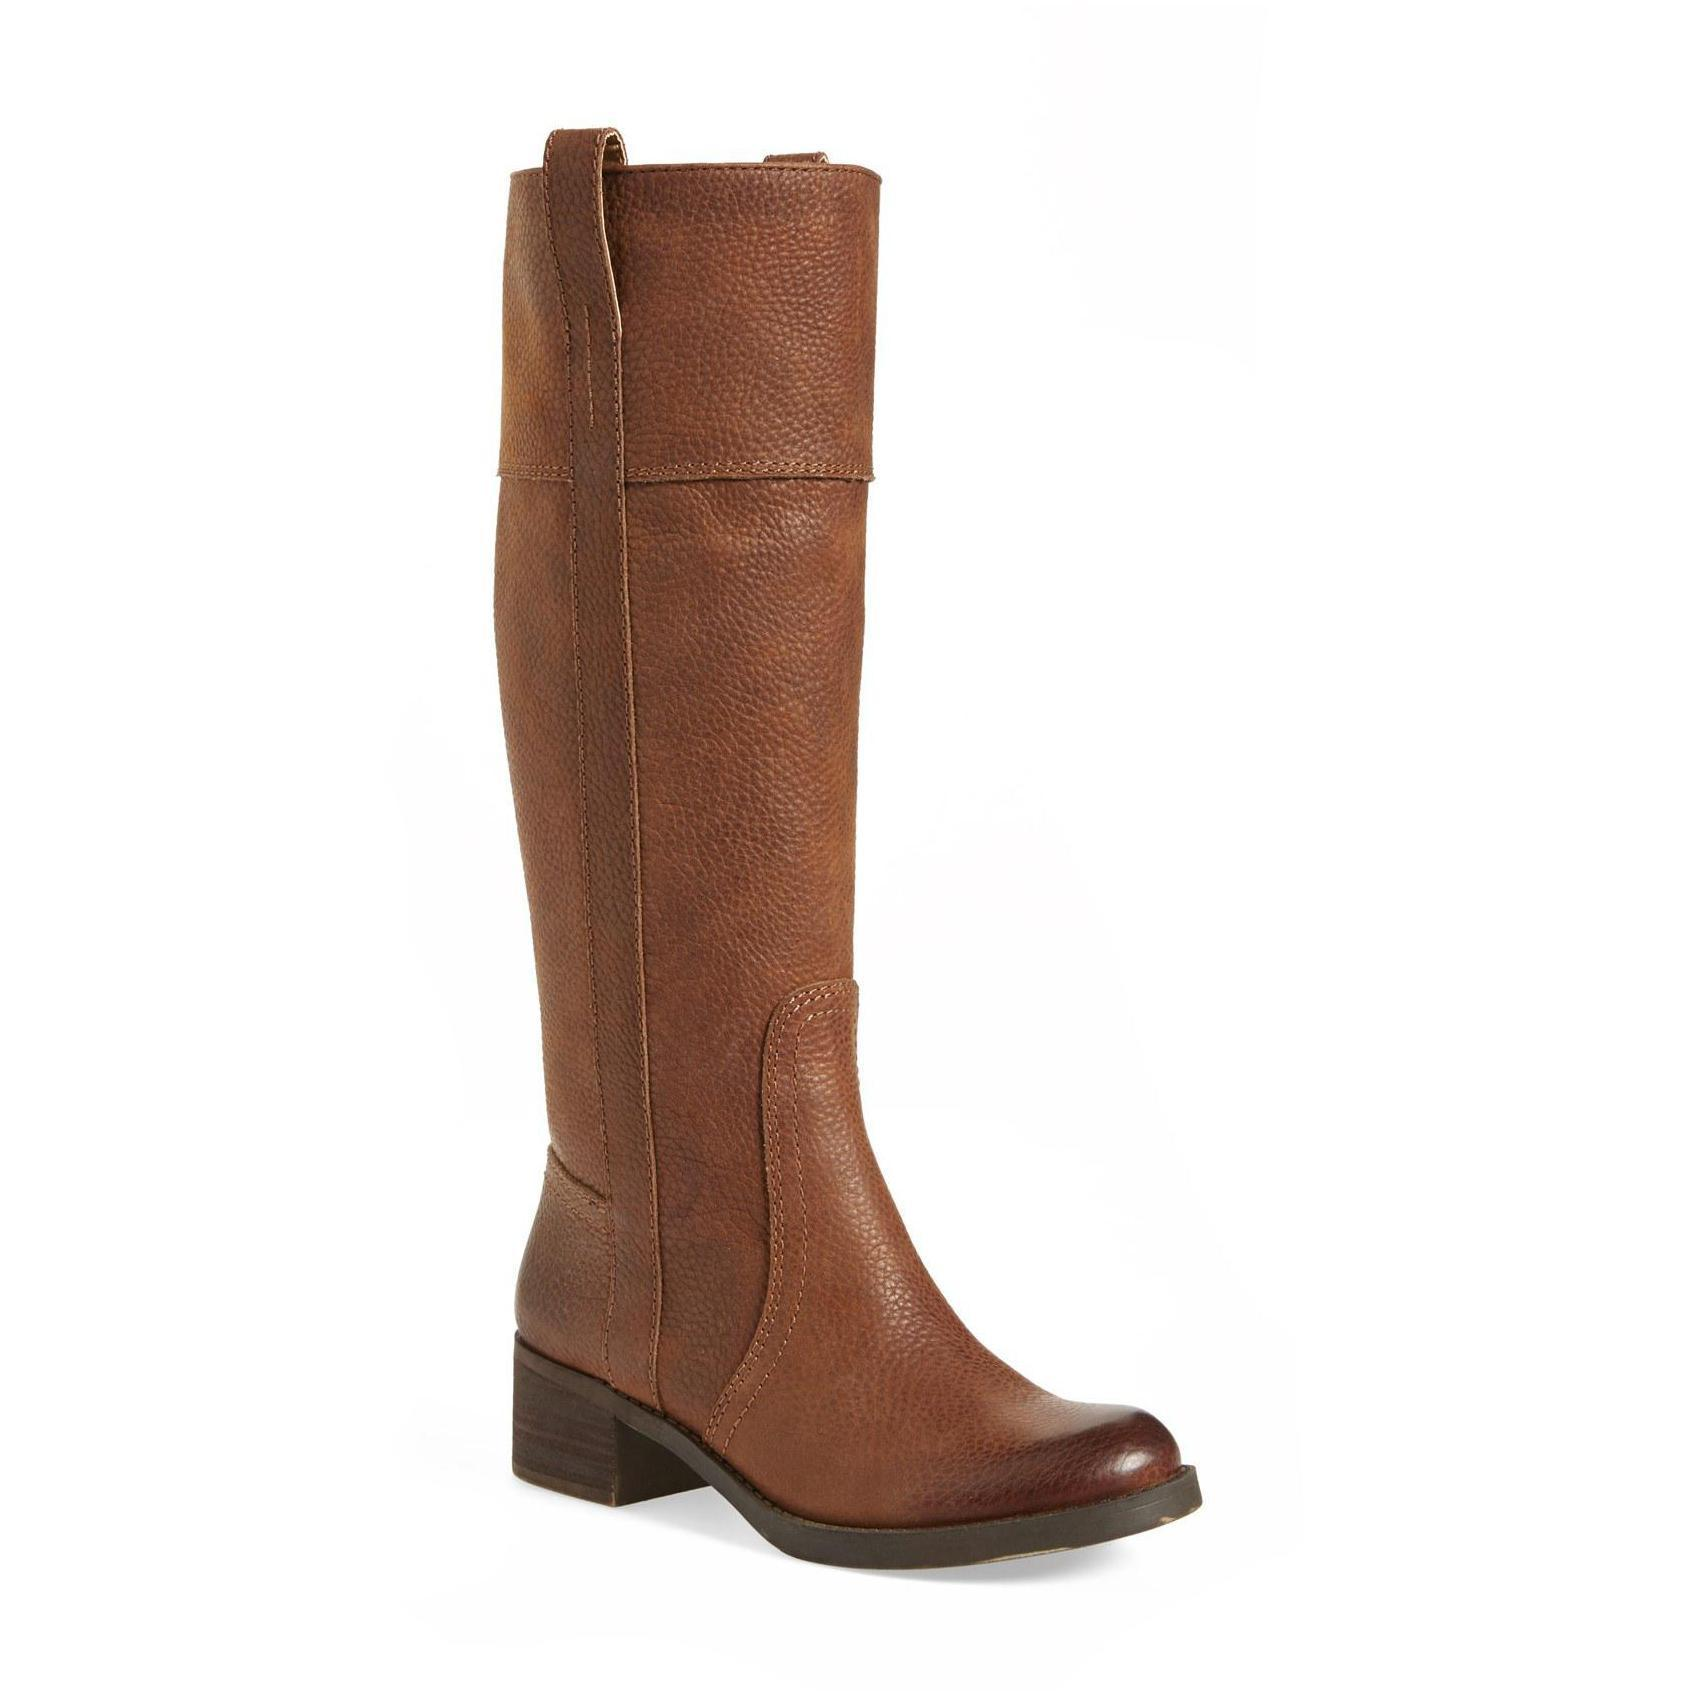 Lucky Brand Heloisse Leather Pull-on Knee-high Riding Boo...